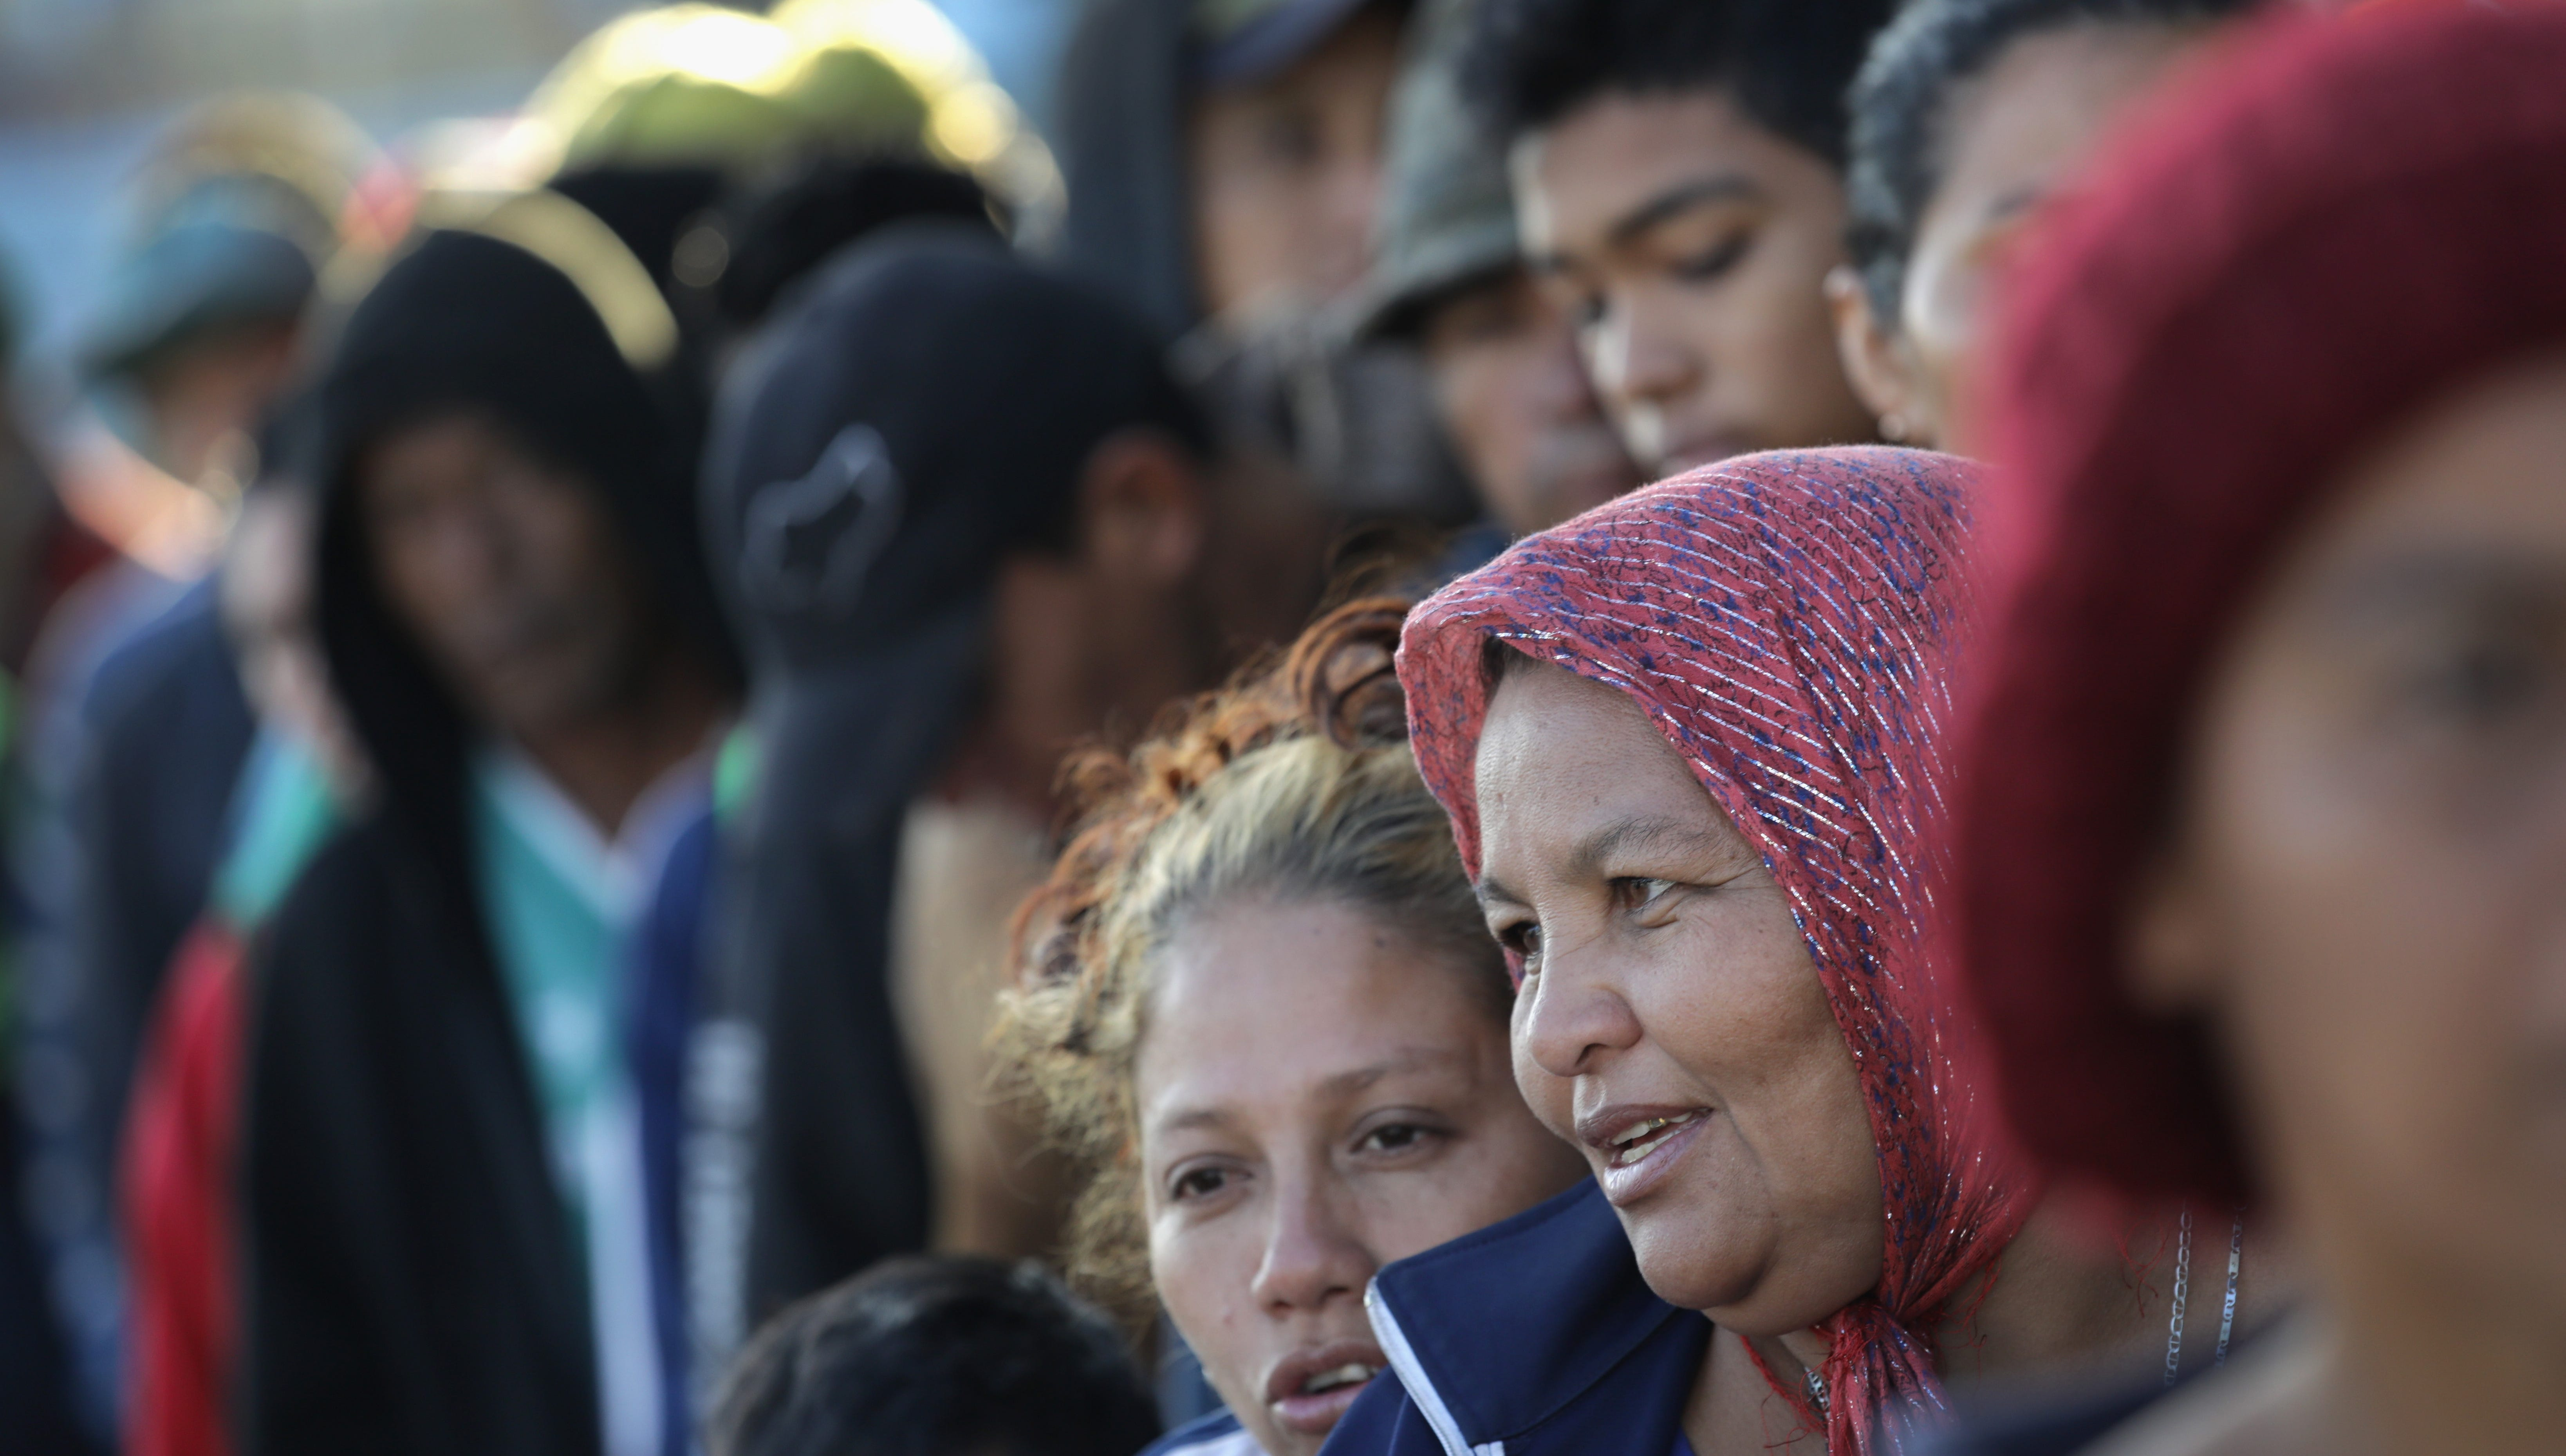 Members of the migrant caravan wait in line to turn in requests for political asylum at the U.S.-Mexico border on Nov. 17, 2018 in Tijuana, Mexico.